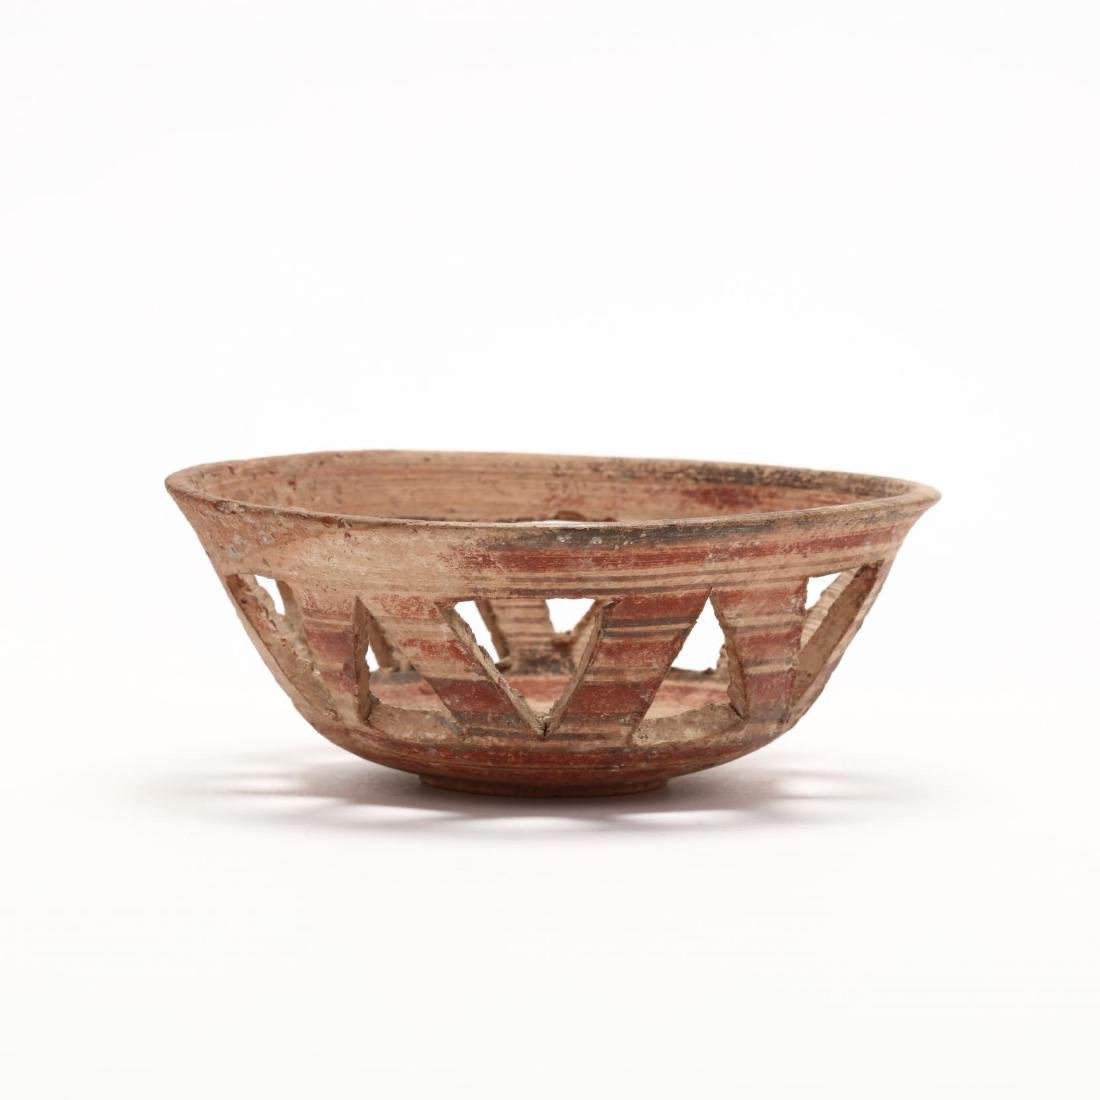 Cypro-Archaic Fenestrated Bowl - 3